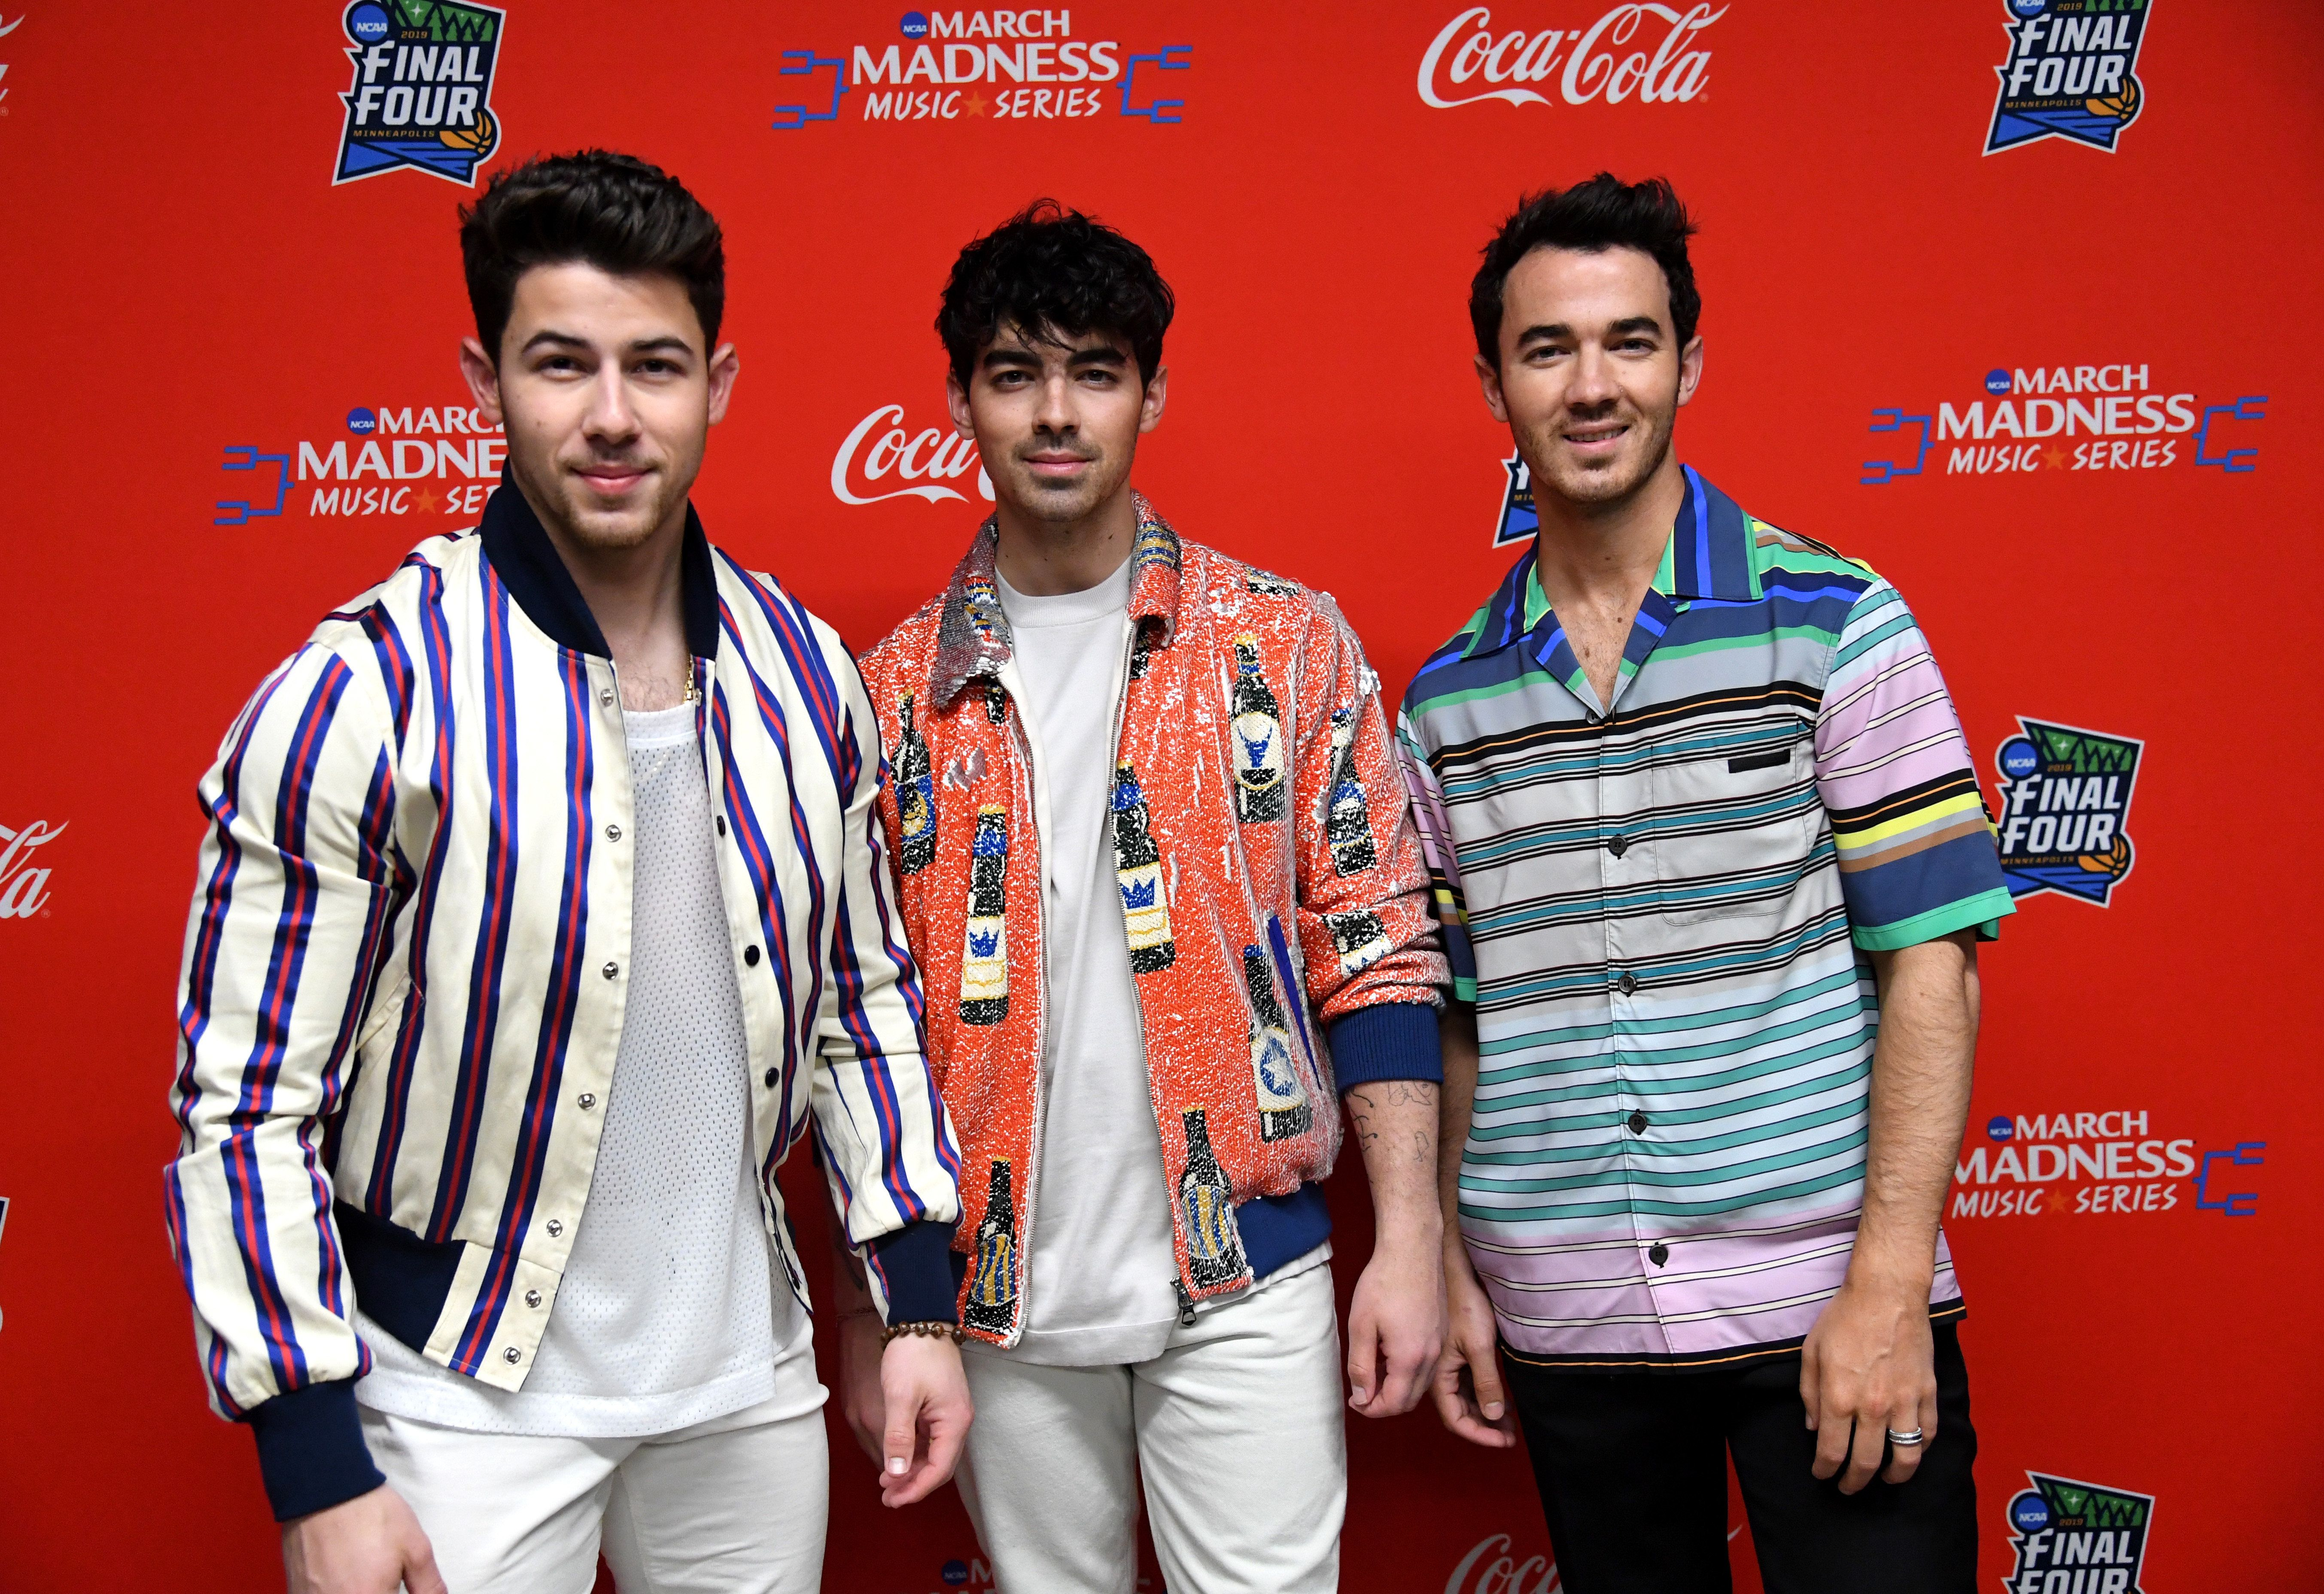 MINNEAPOLIS, MINNESOTA - APRIL 06: (L-R) Nick Jonas, Joe Jonas, and Kevin Jonas of the Jonas Brothers attend the March Madness Music Series featuring Jonas Brothers presented by Coca-Cola during the NCAA March Madness Music Series at The Armory on April 06, 2019 in Minneapolis, Minnesota. (Photo by Kevin Mazur/Getty Images for Turner Sports)